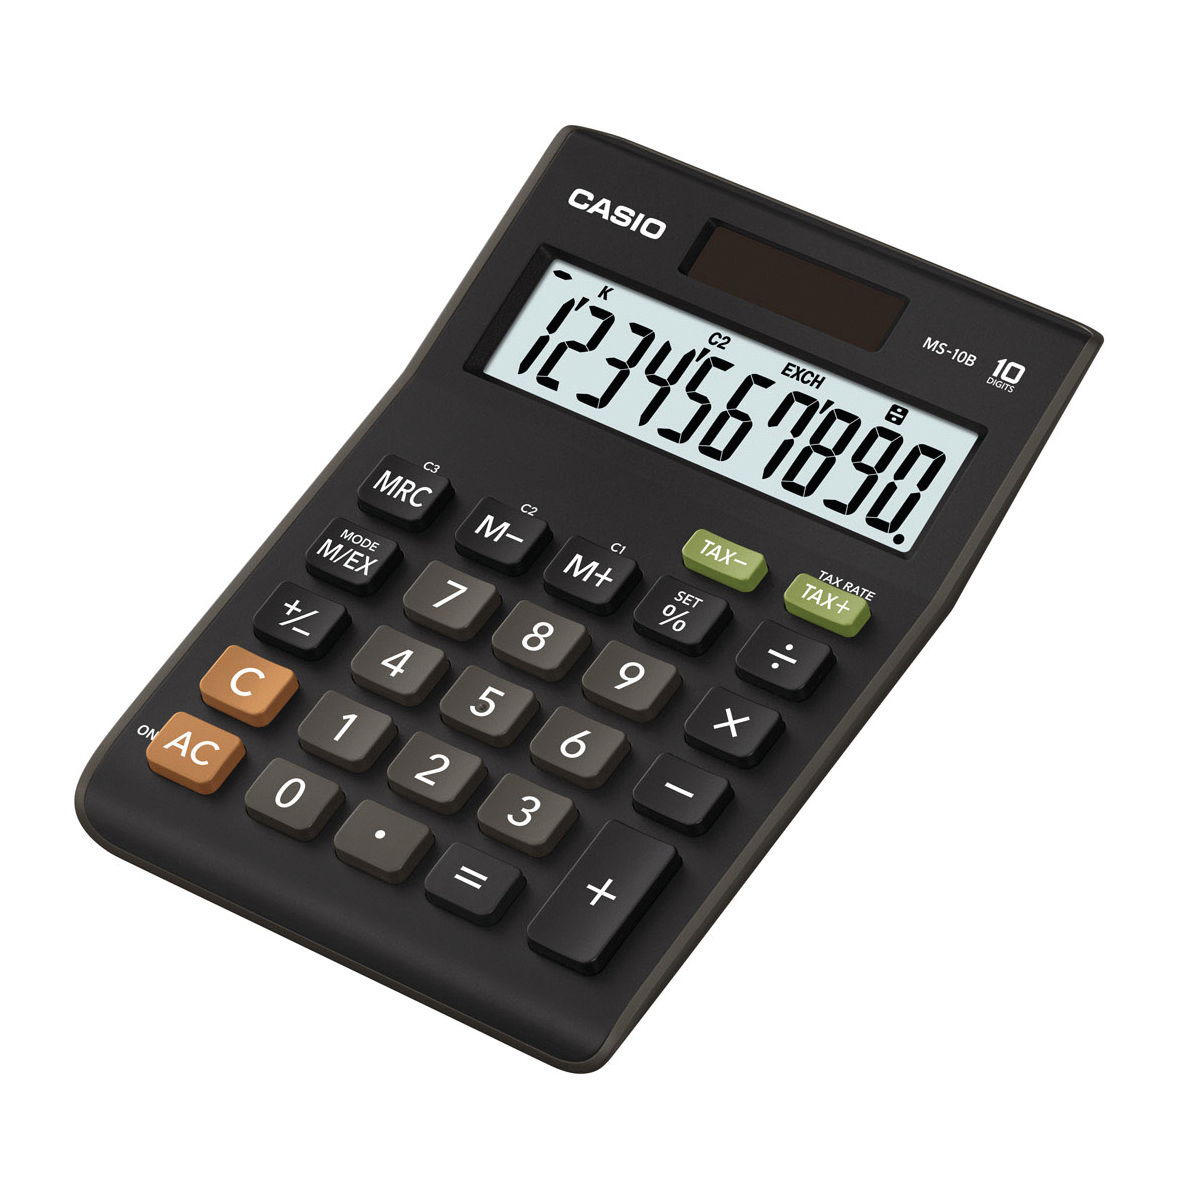 Desktop Calculator Casio Desktop Calculator 10 Digit 3 Key Memory Battery/Solar Power 103x29x147mm Black Ref MS-10B